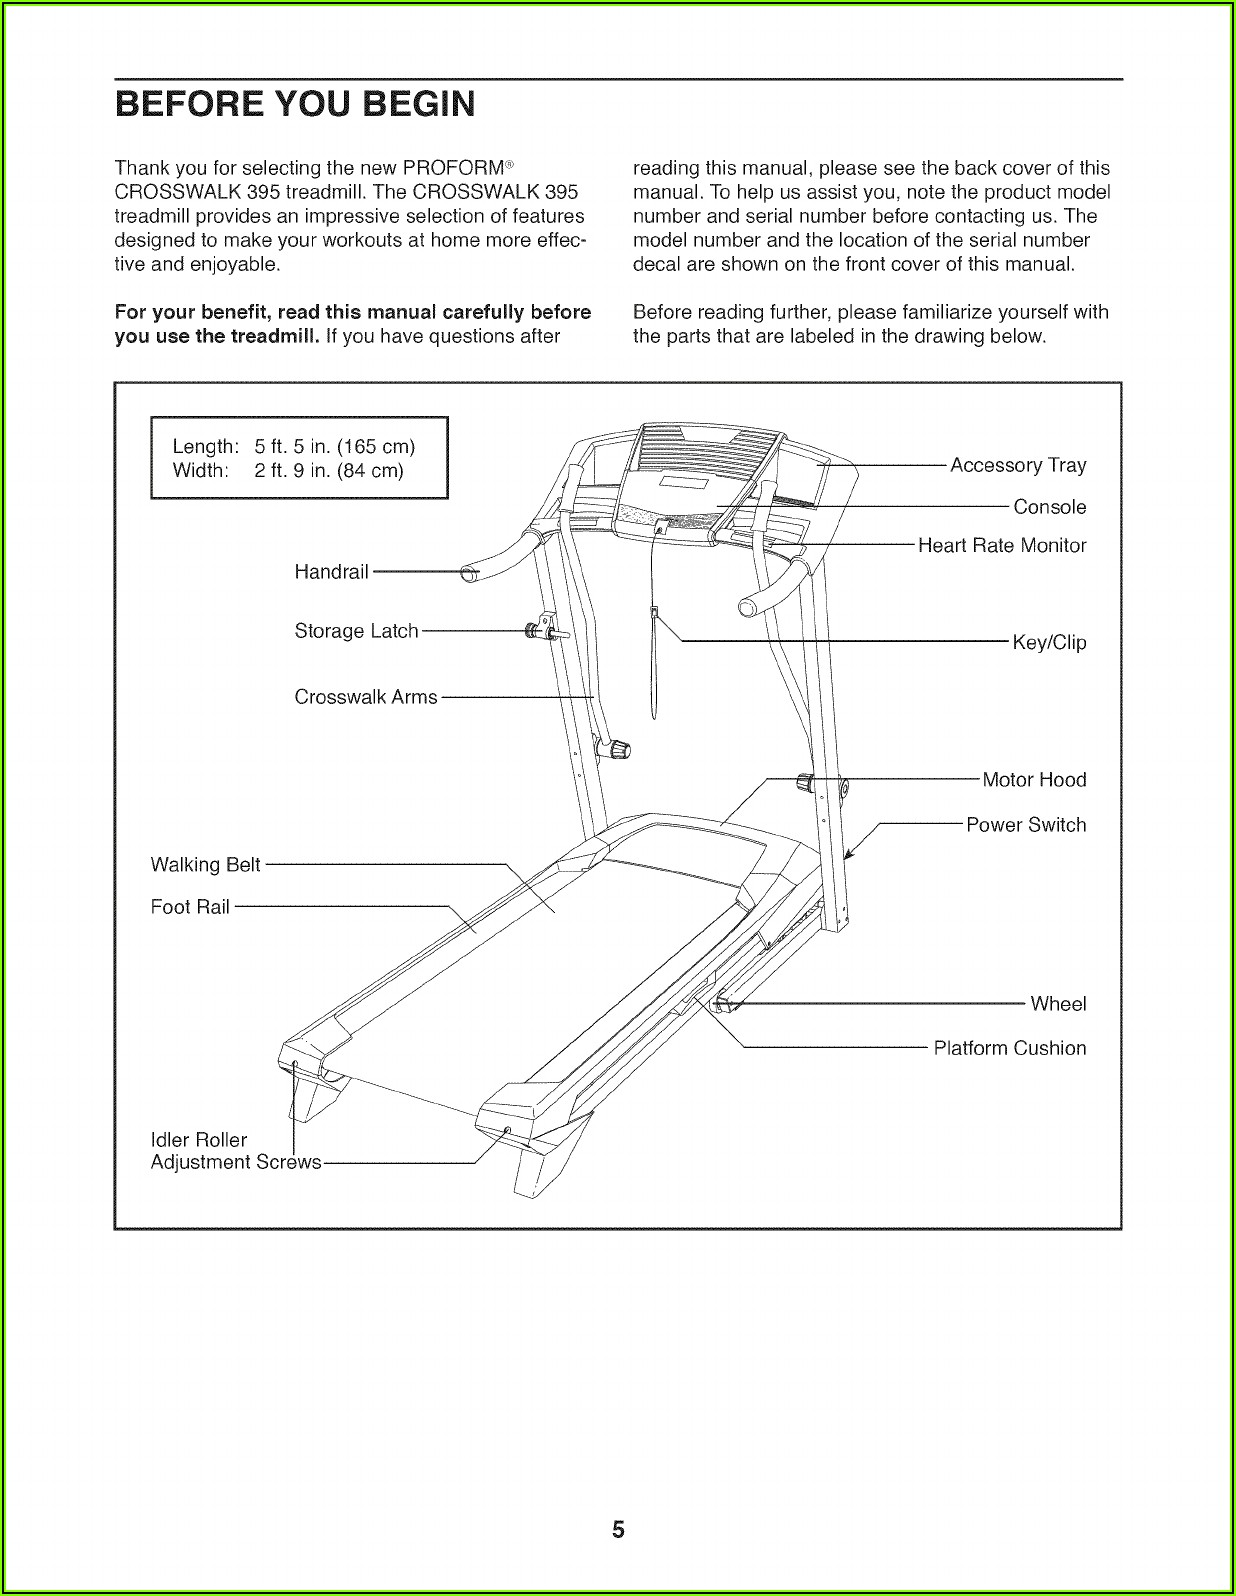 Proform Crosswalk 395 Manual